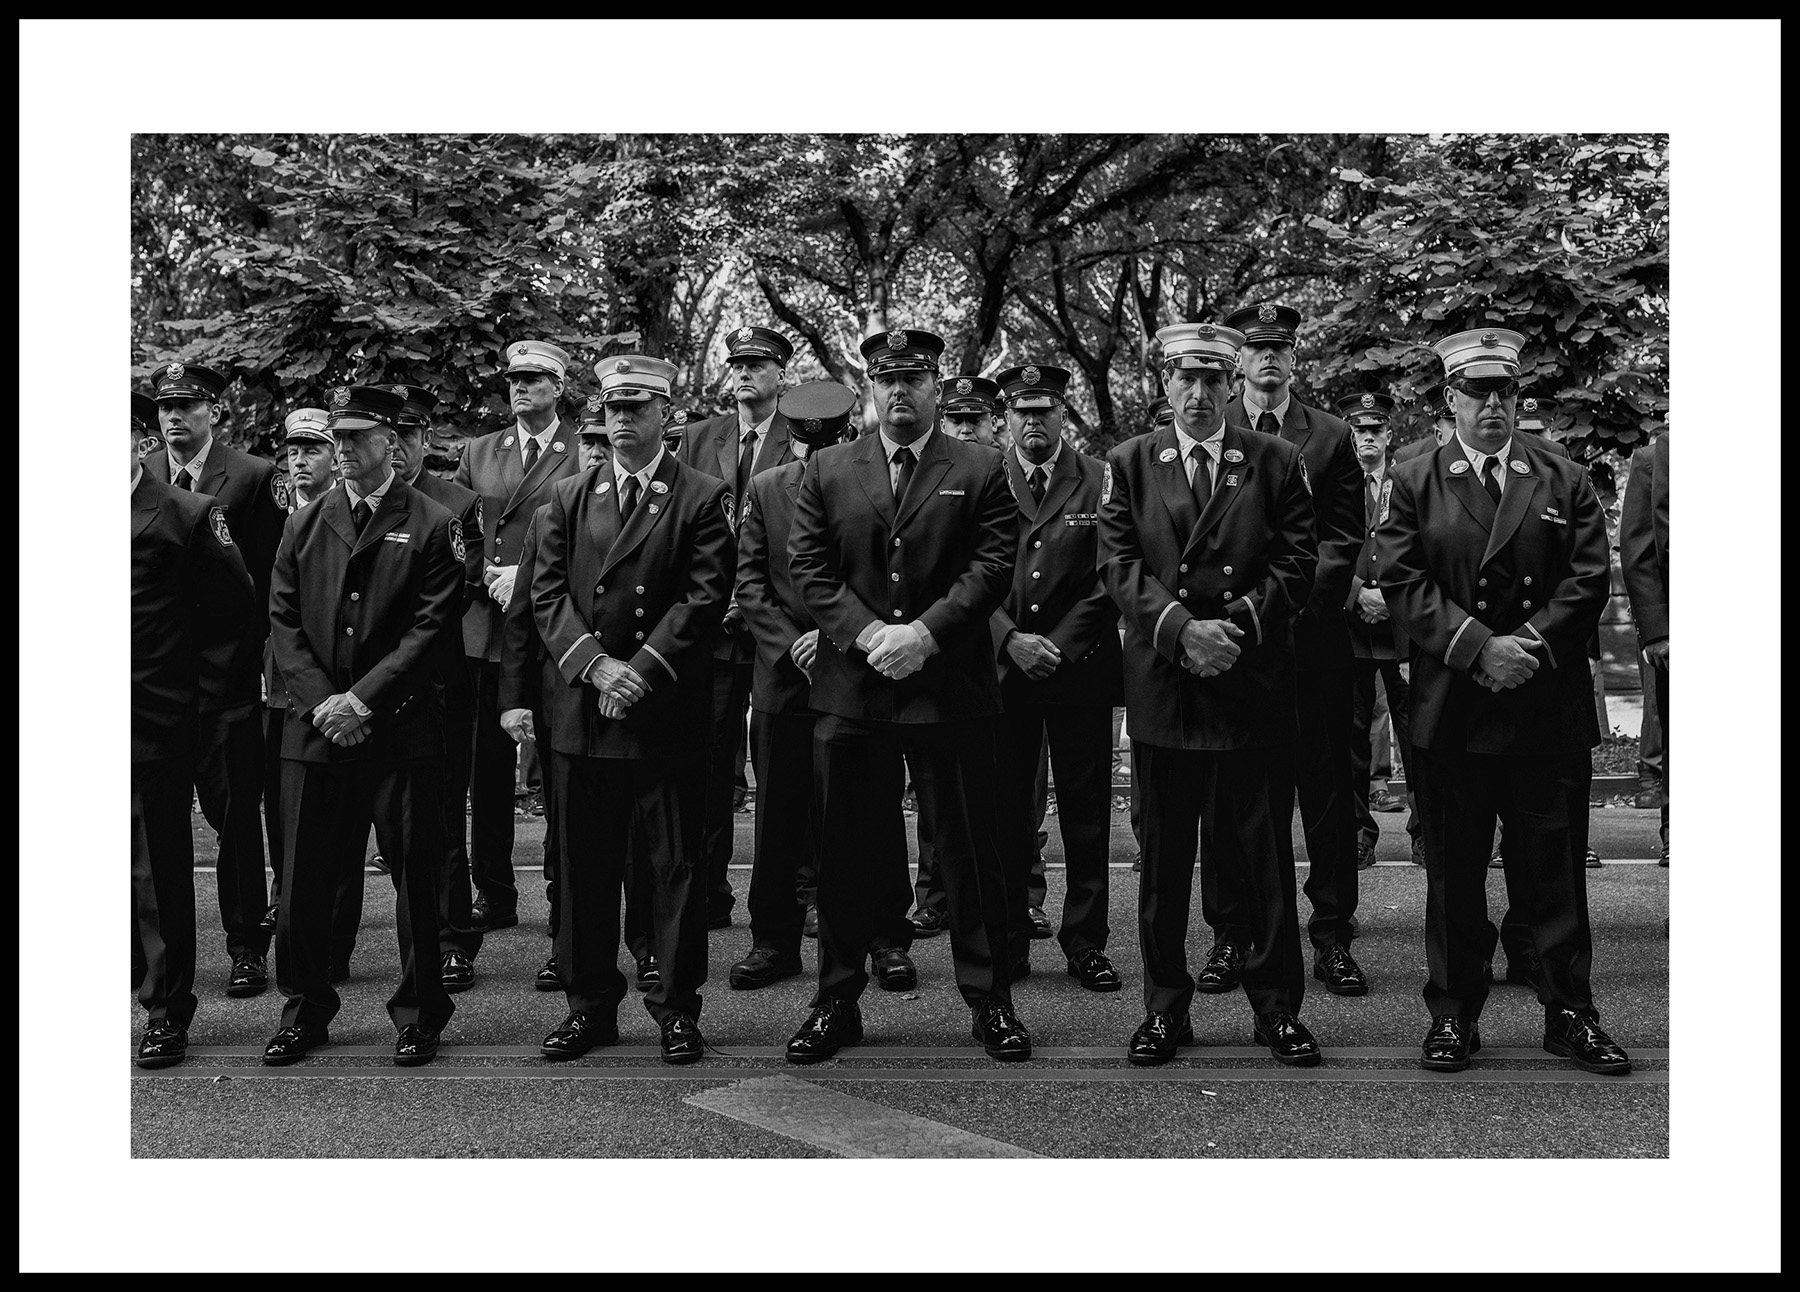 FIREFIGHTERS ON THE LINE Exhibition - Some Info here: